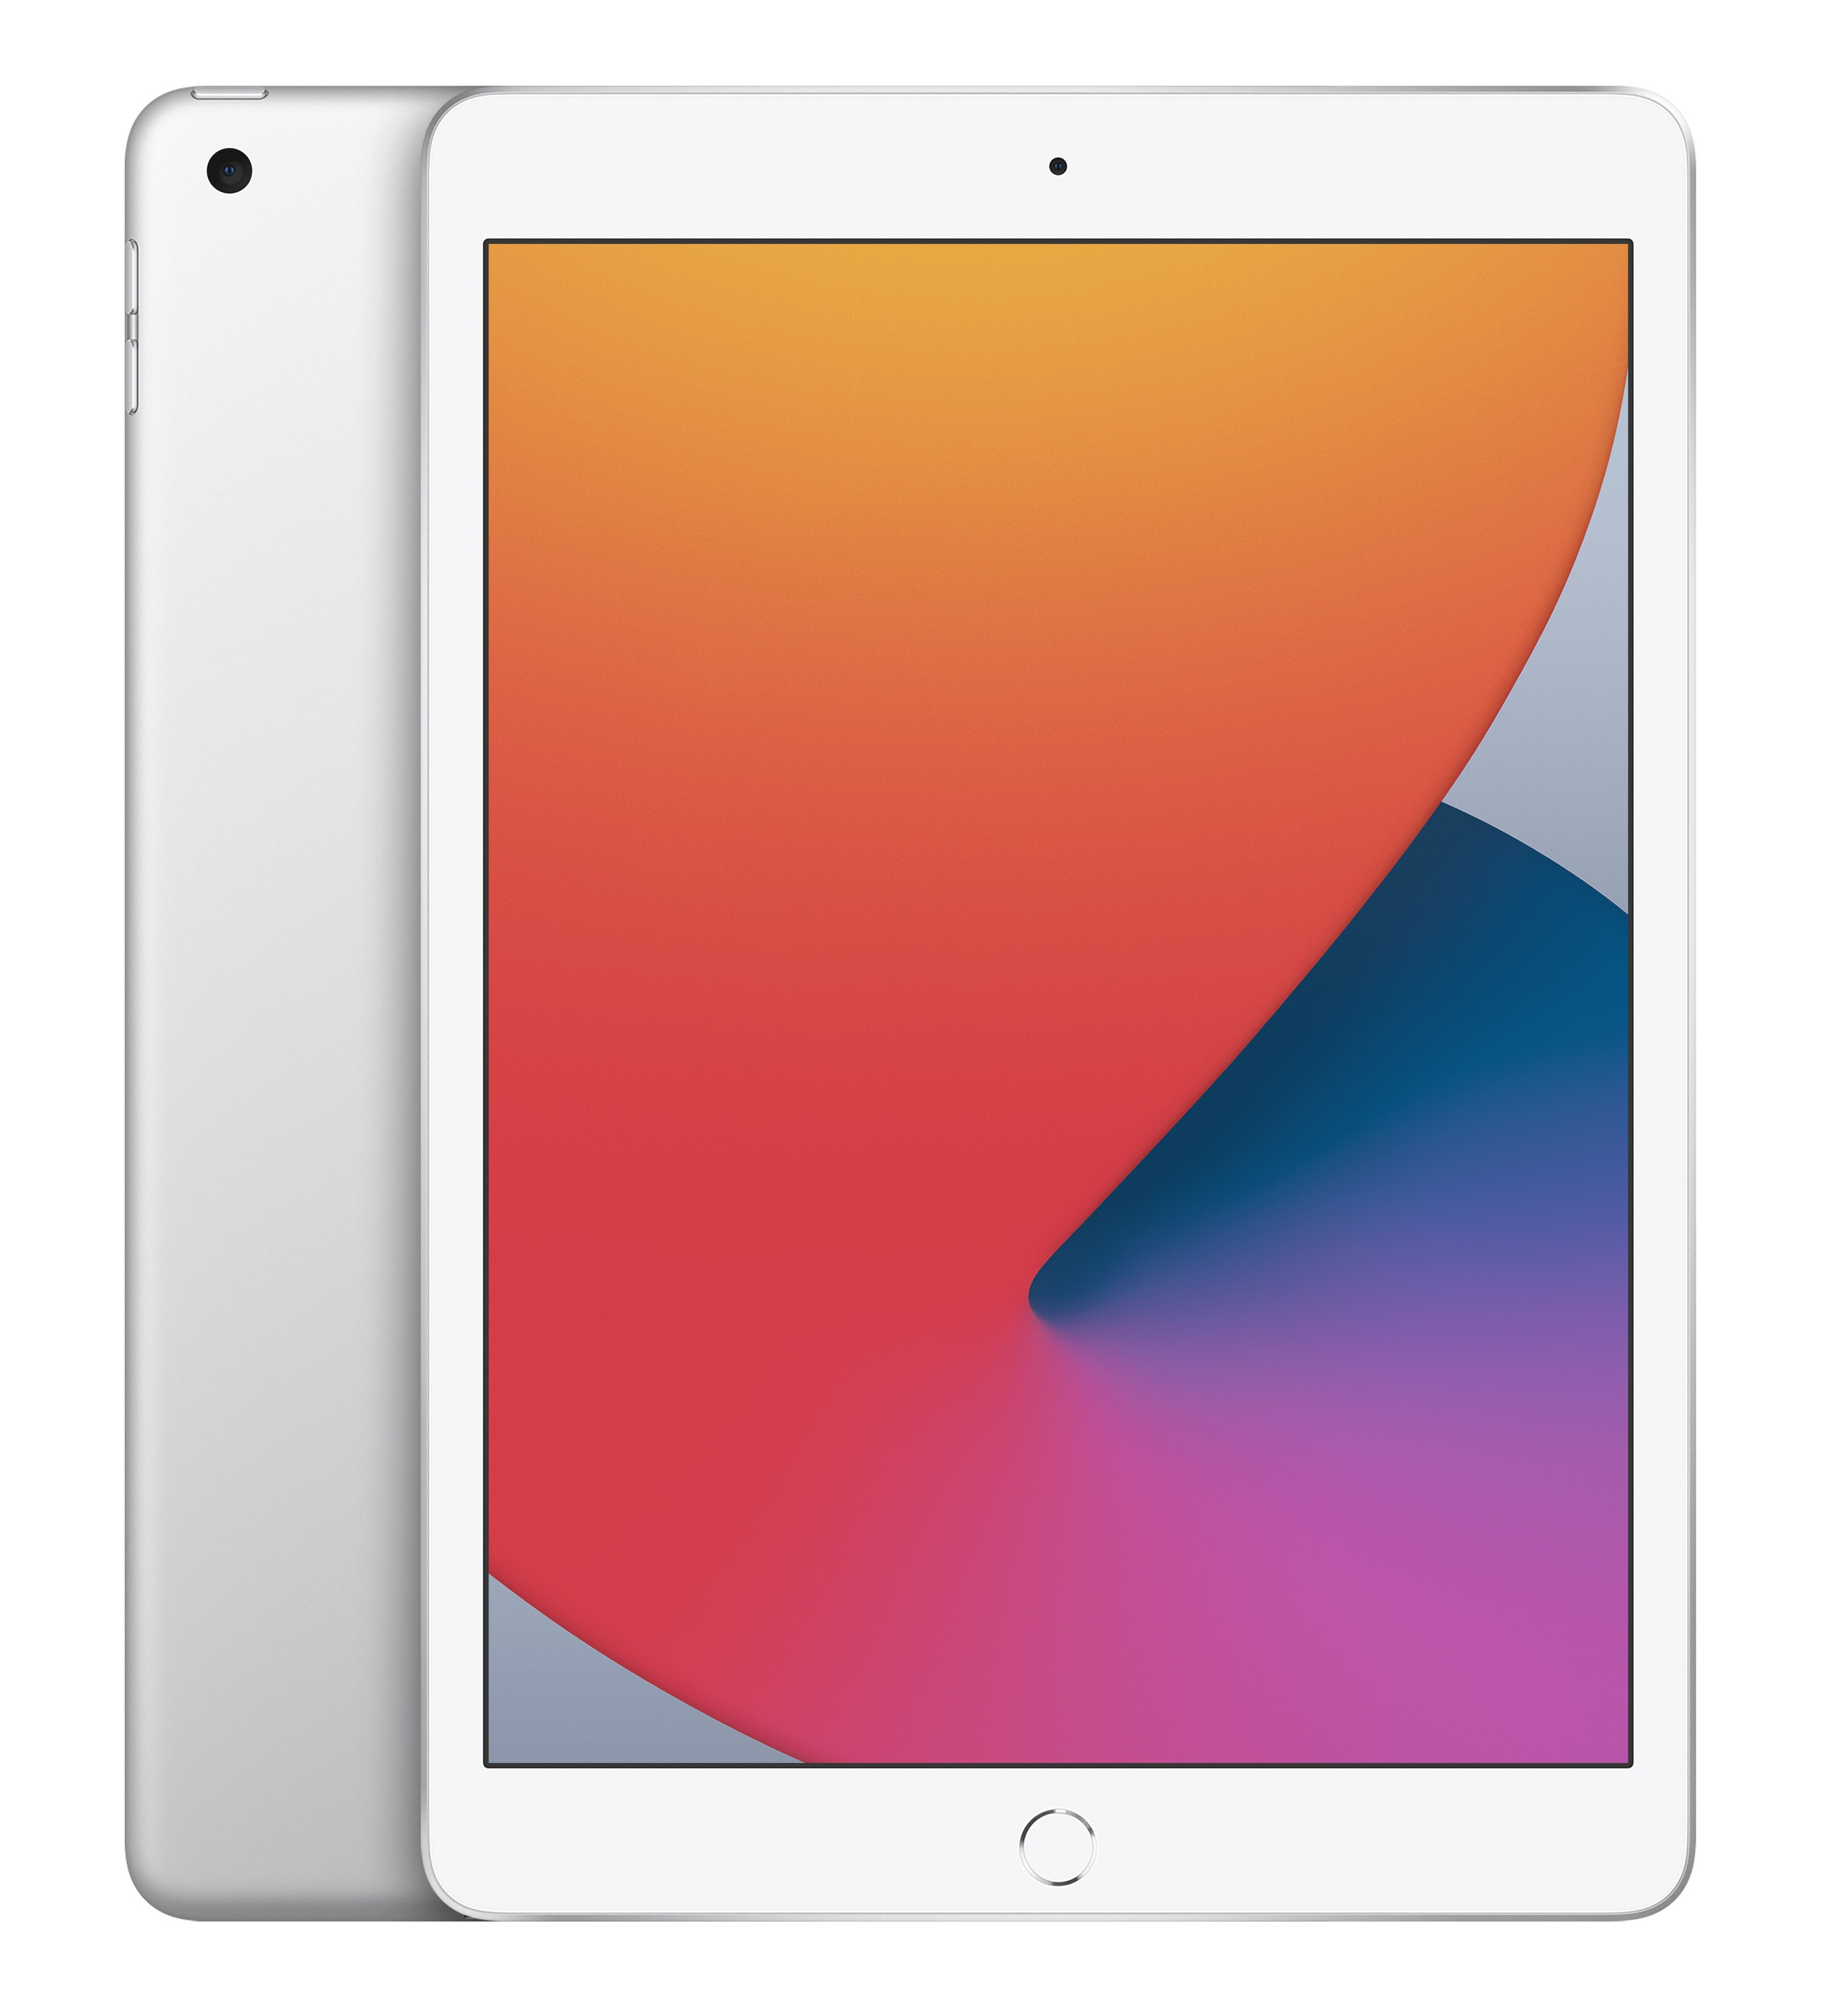 Apple iPad 32 GB Tablet 25,9 cm (10.2 Zoll) iPadOS 8 MP für 379,00 Euro